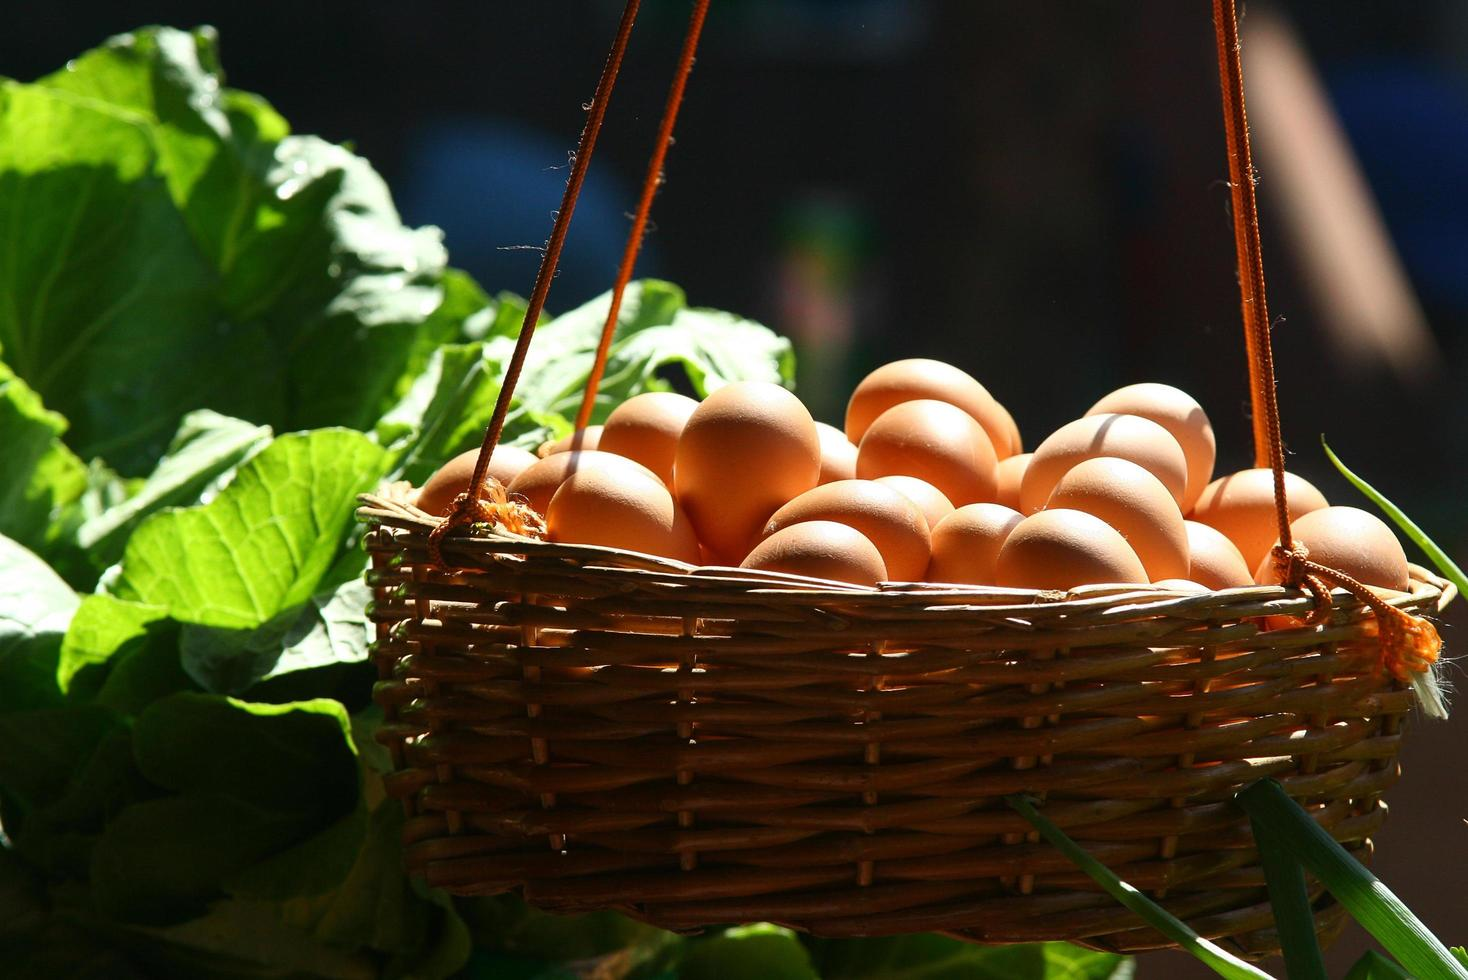 Basket filled with eggs photo